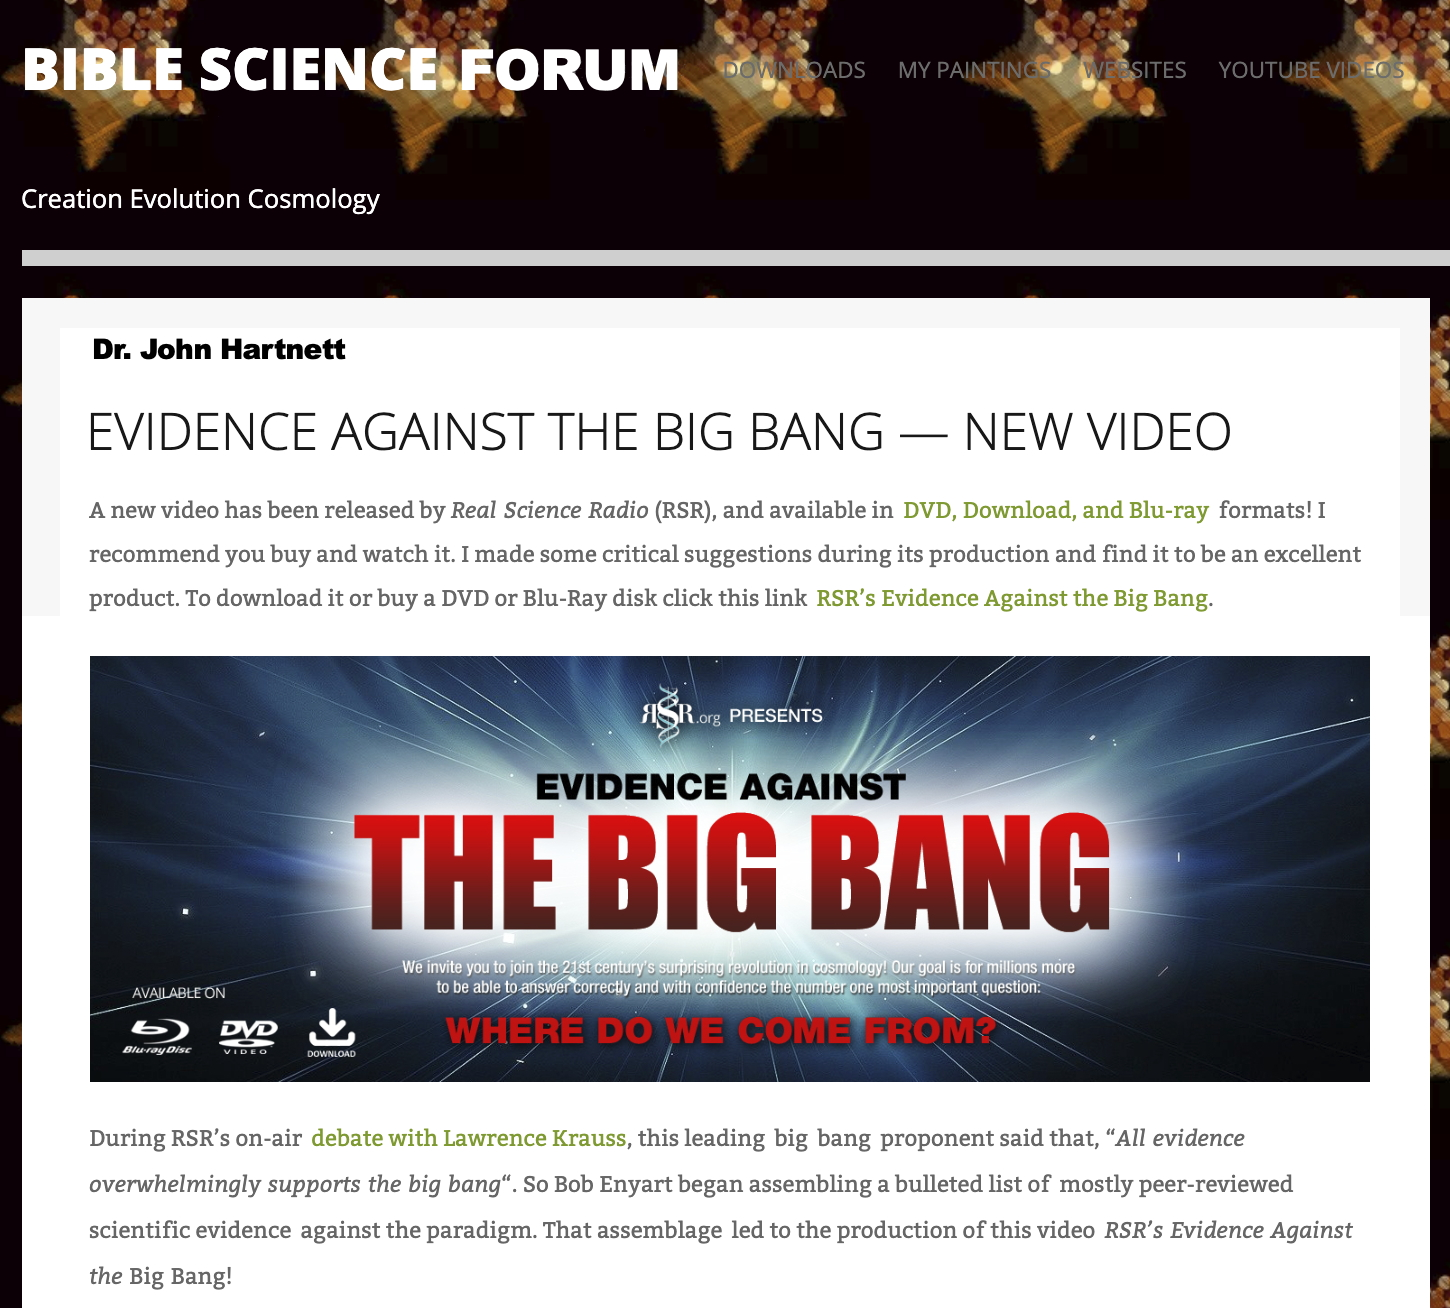 Dr John Hartnett endorses RSR's Big Bang video!